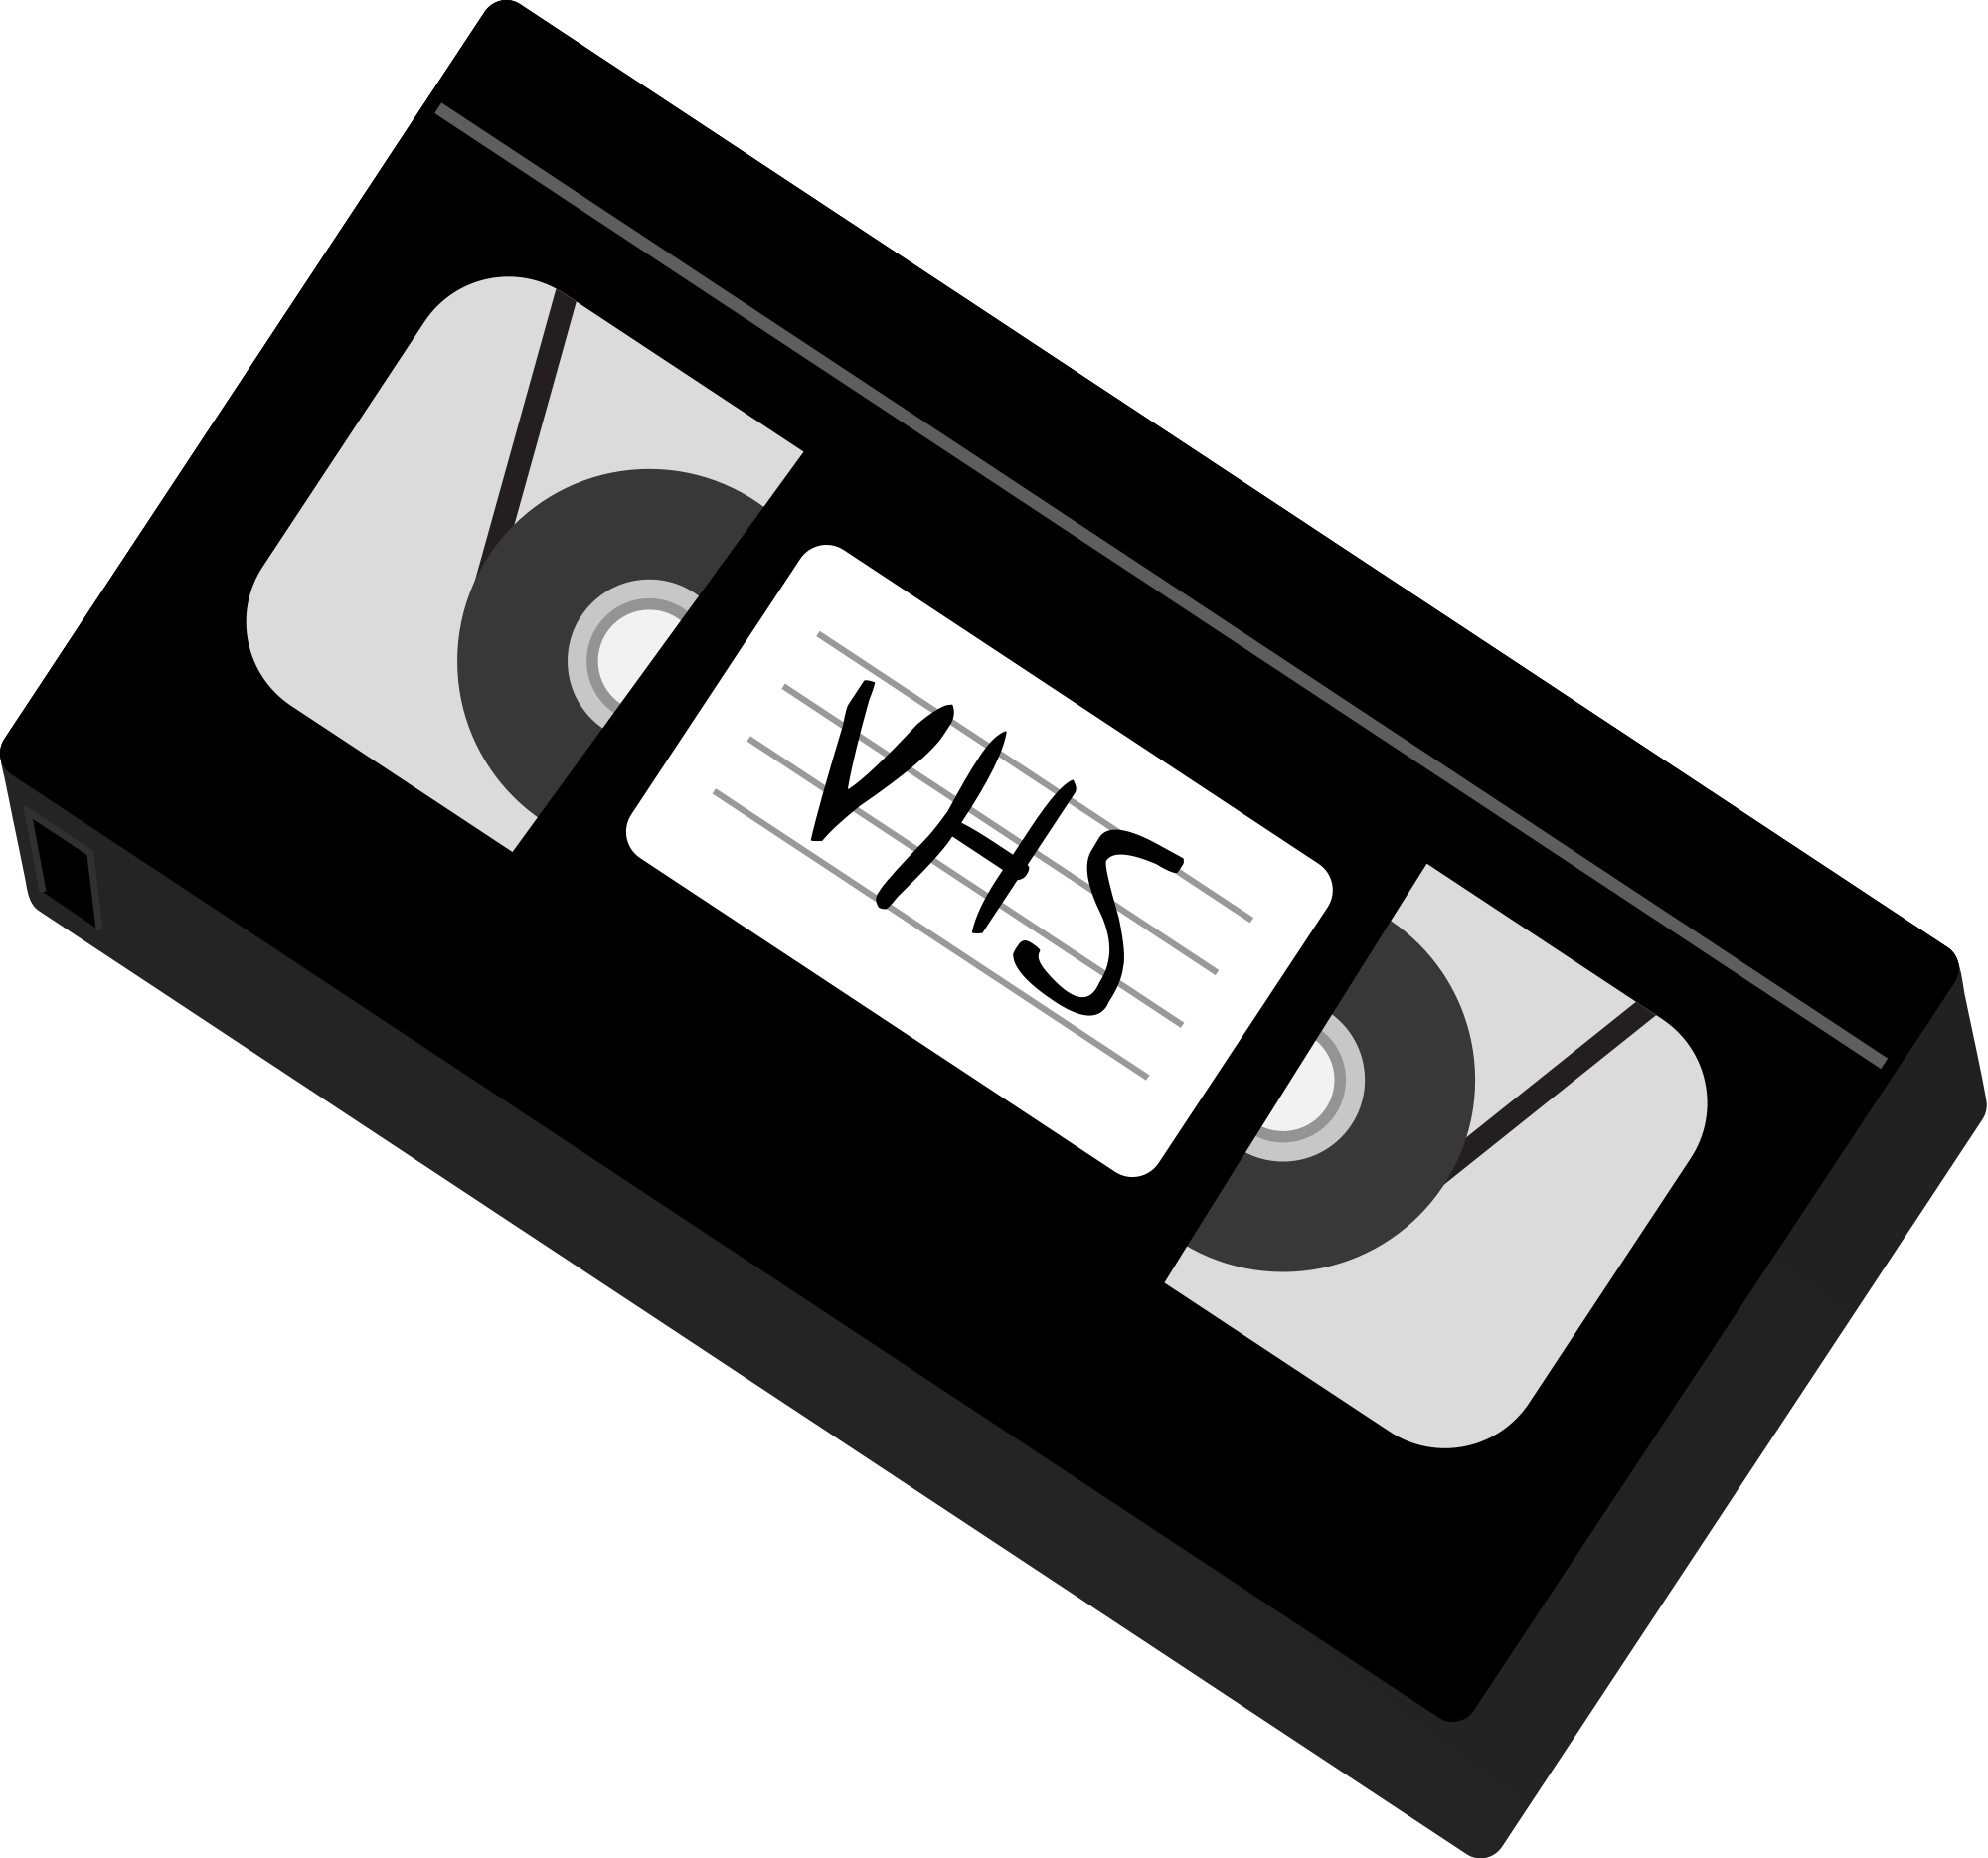 Vhs PNG - 54626